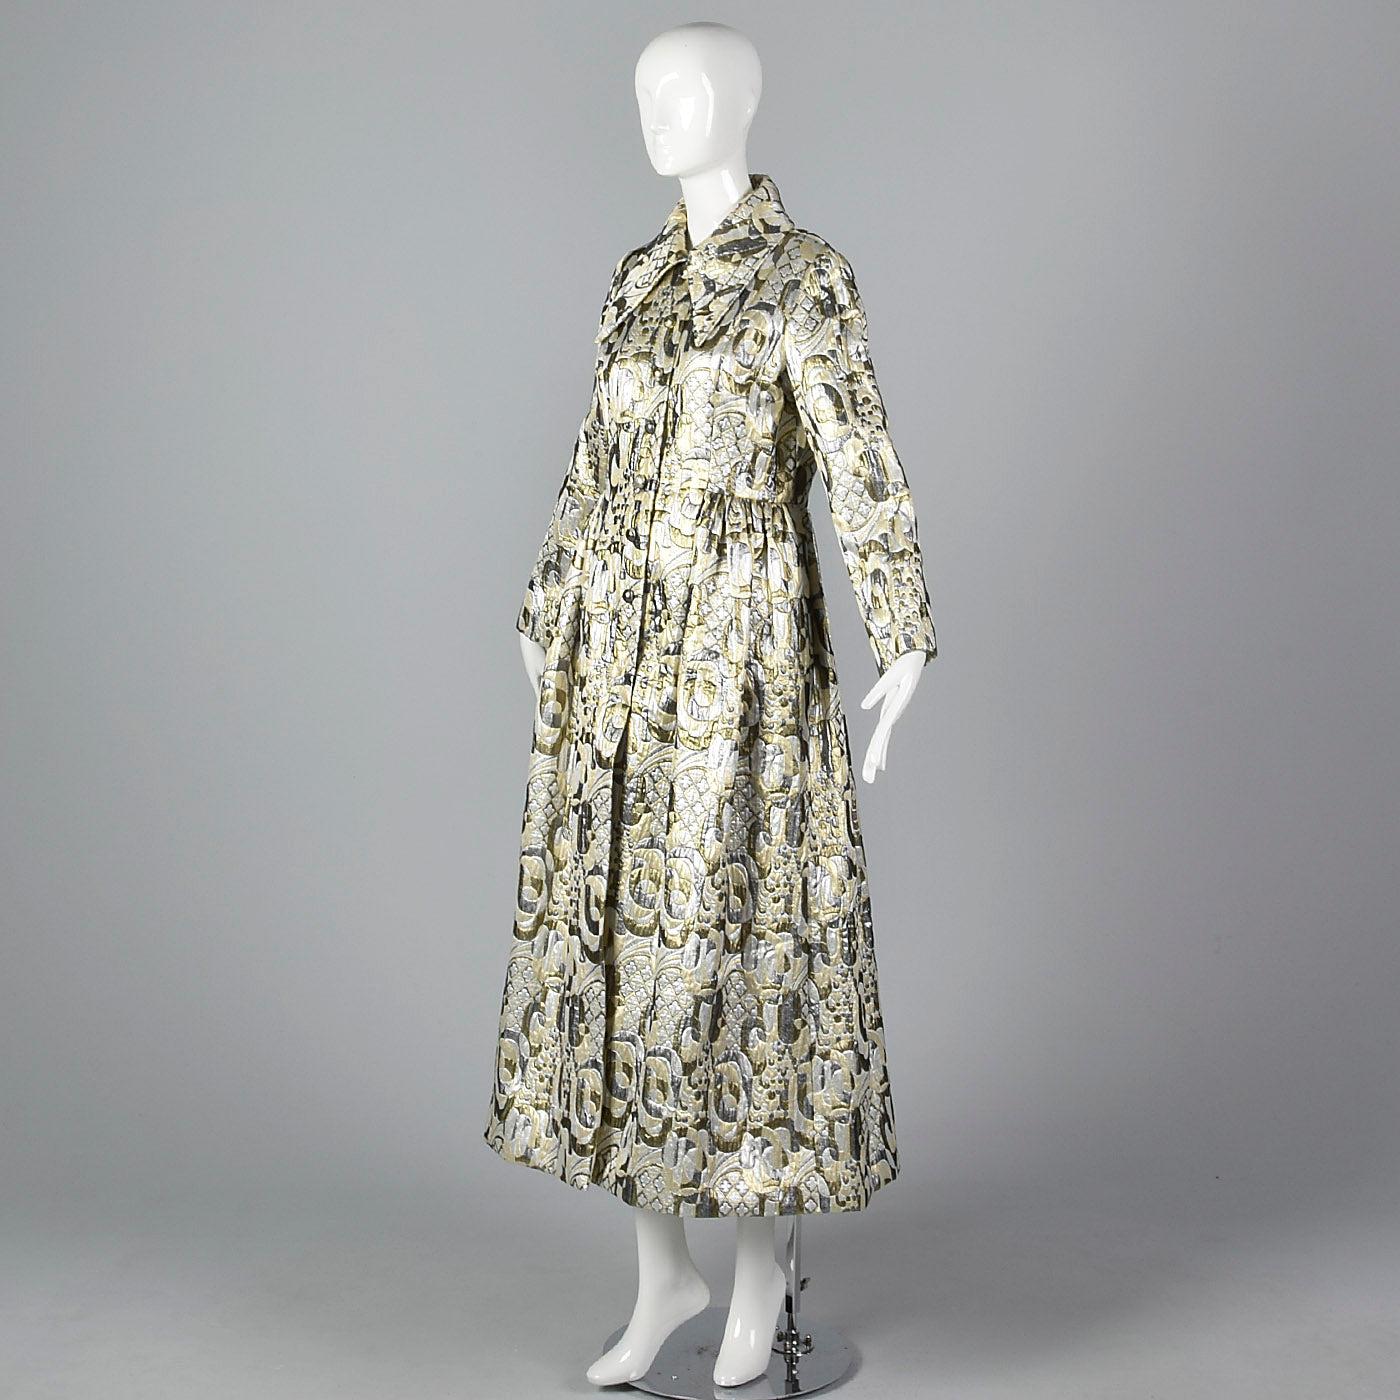 Dramatic 1970s Metallic Brocade Maxi Coat